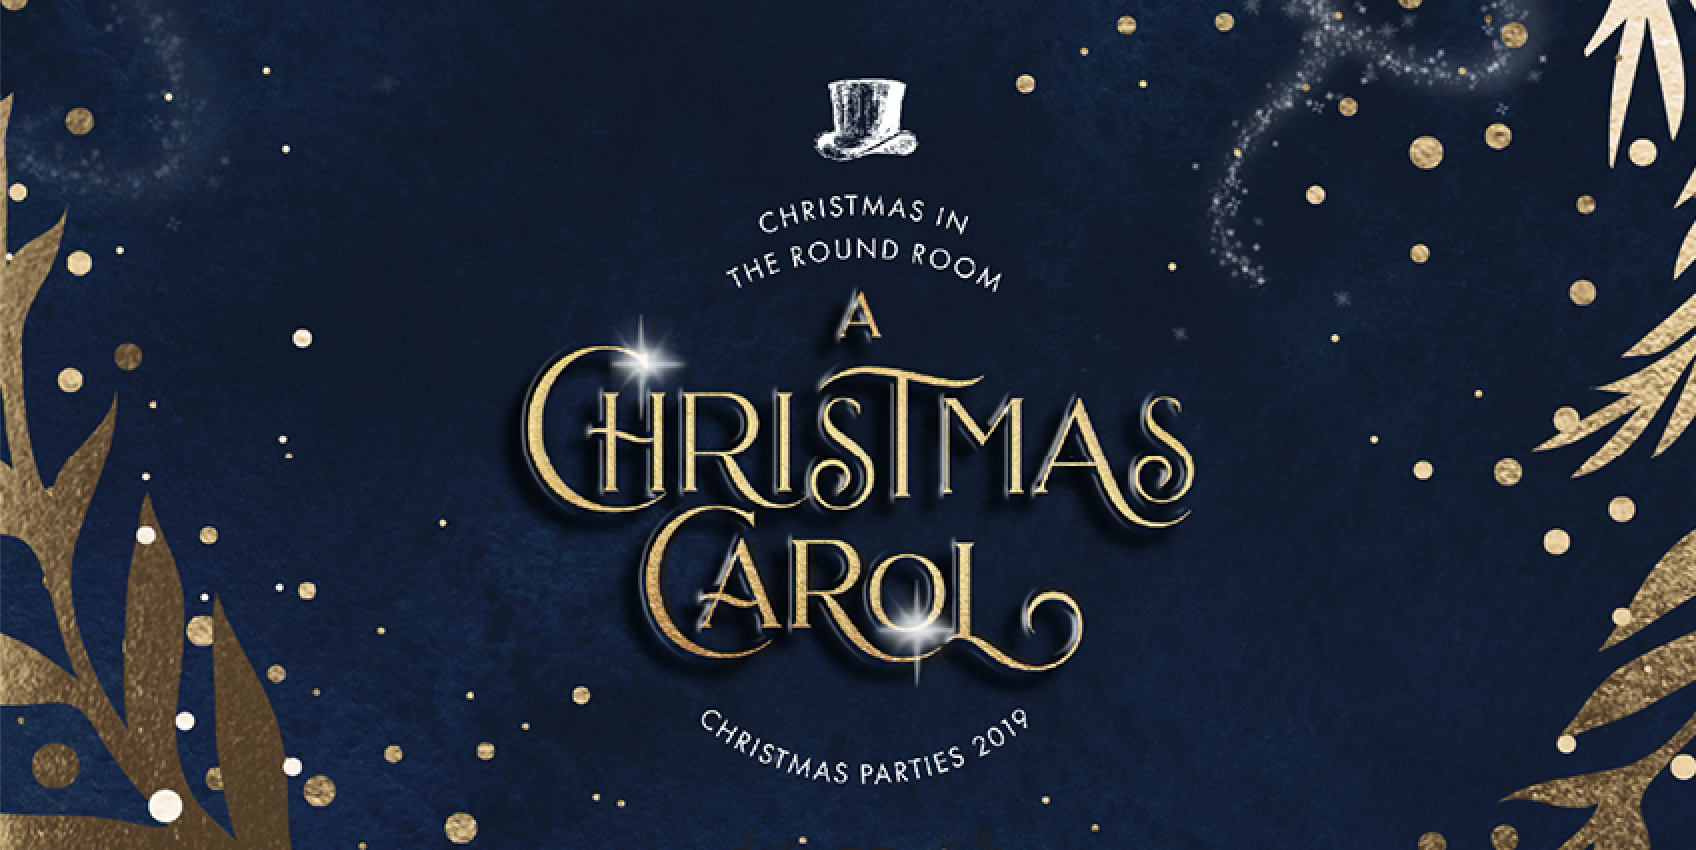 Christmas Party 2019 Logo.Christmas Parties 2019 Dublin Office Christmas Party At